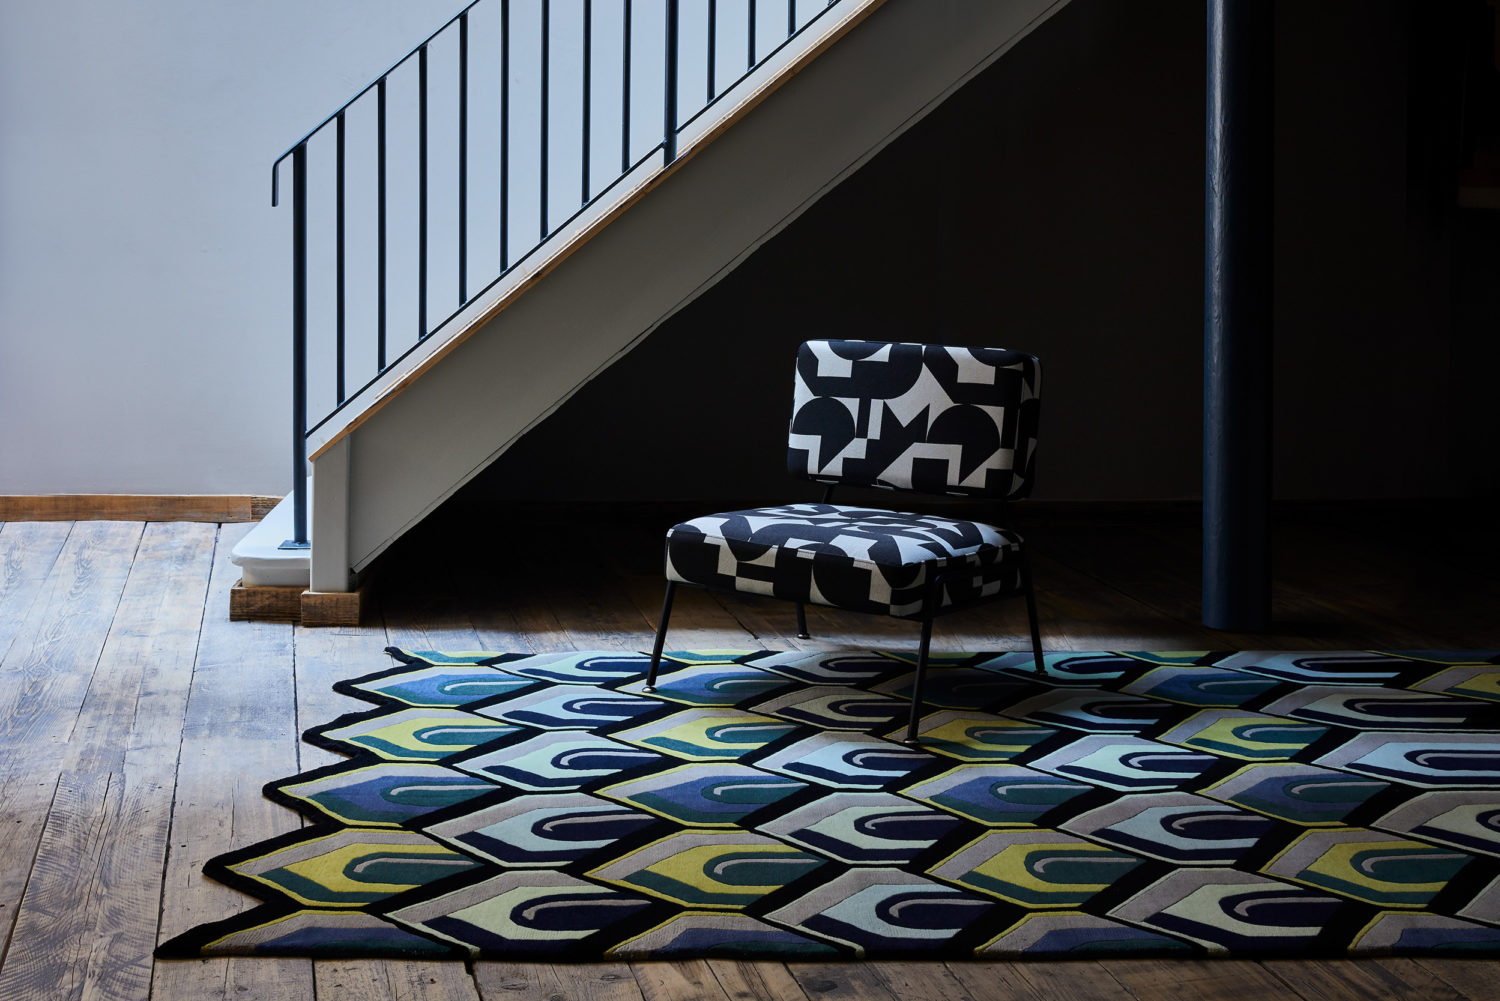 A design that draws its inspiration from the culture of India